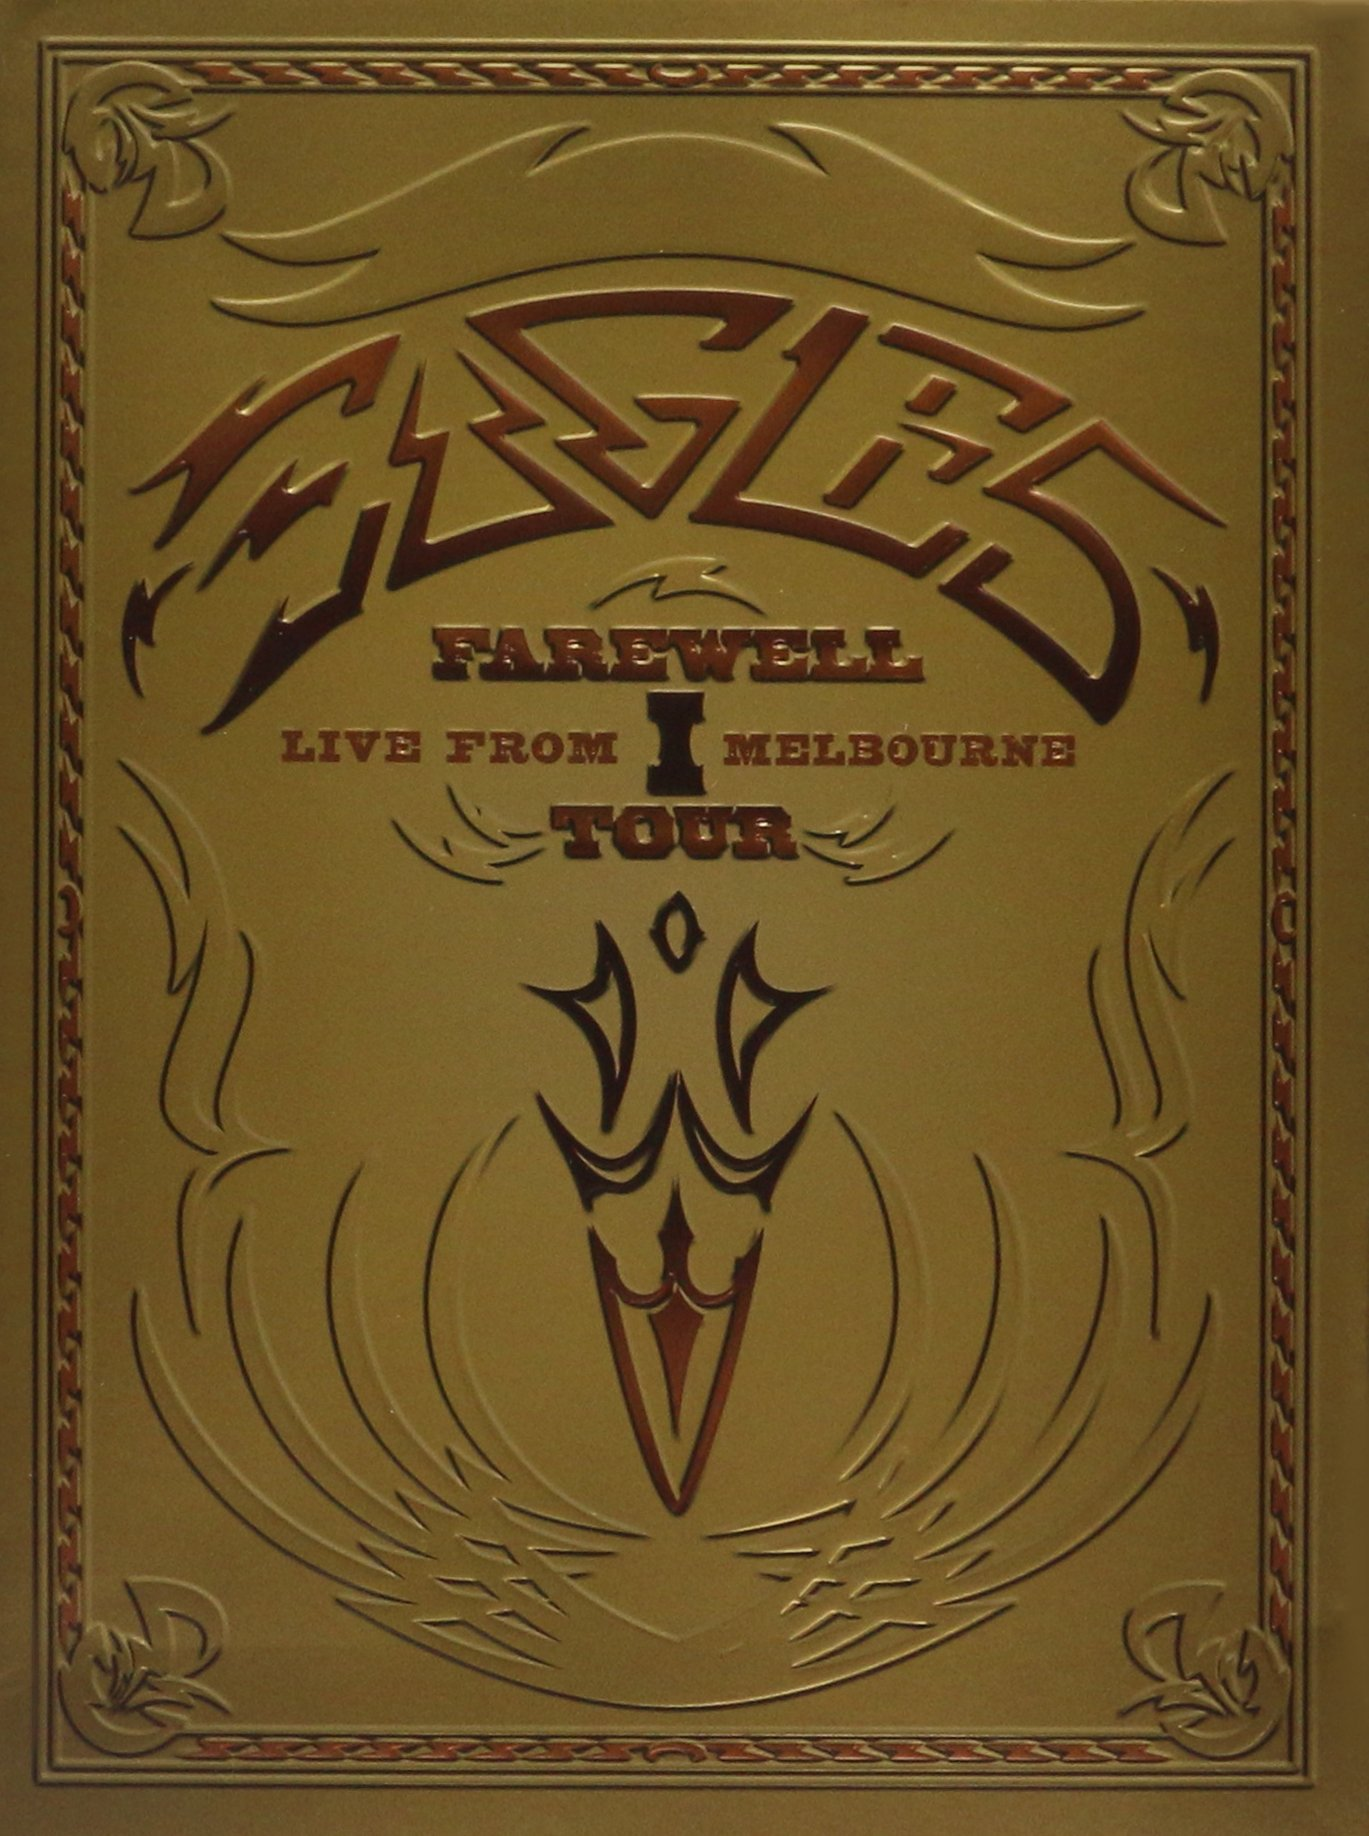 The Eagles - Farewell 1 Tour - Live From Melbourne